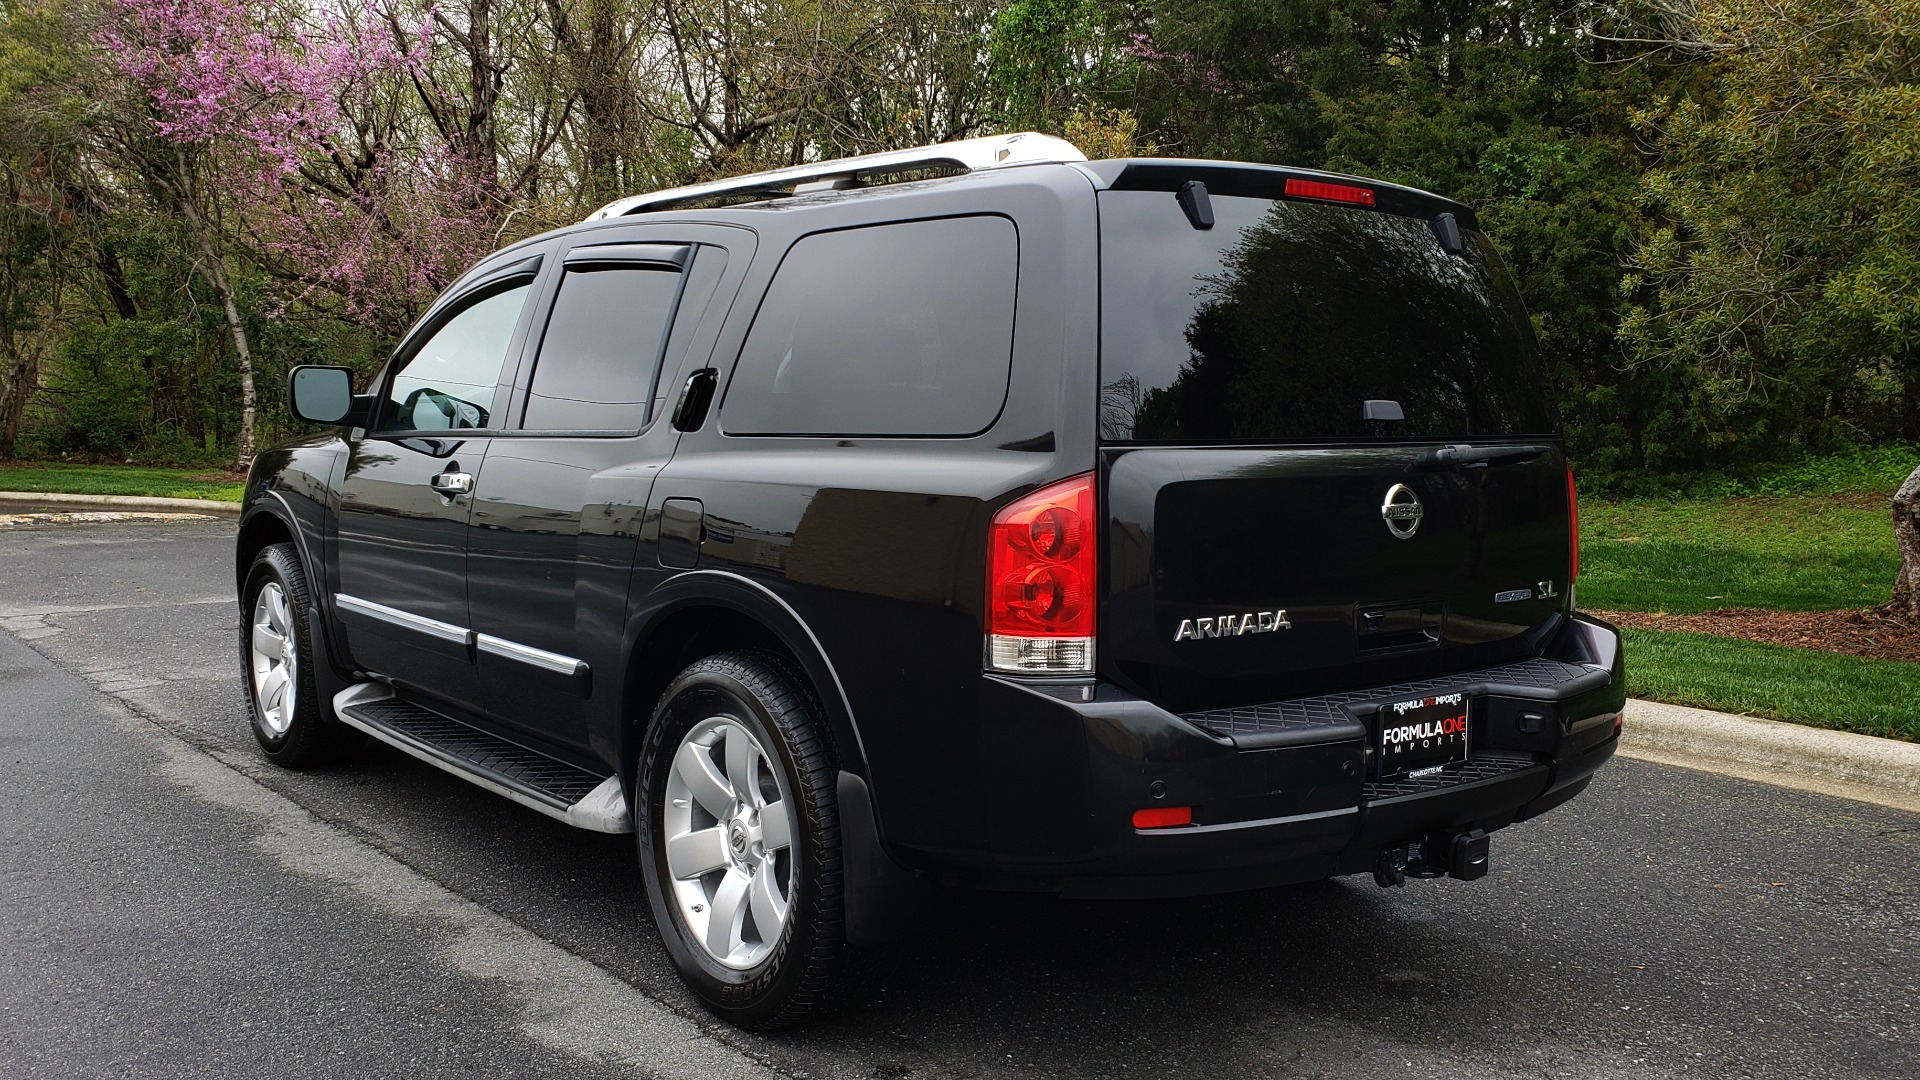 Used 2013 Nissan ARMADA SL 4WD / 5.6L V8 / NAV / SUNROOF / 3-ROW / REARVIEW for sale Sold at Formula Imports in Charlotte NC 28227 3